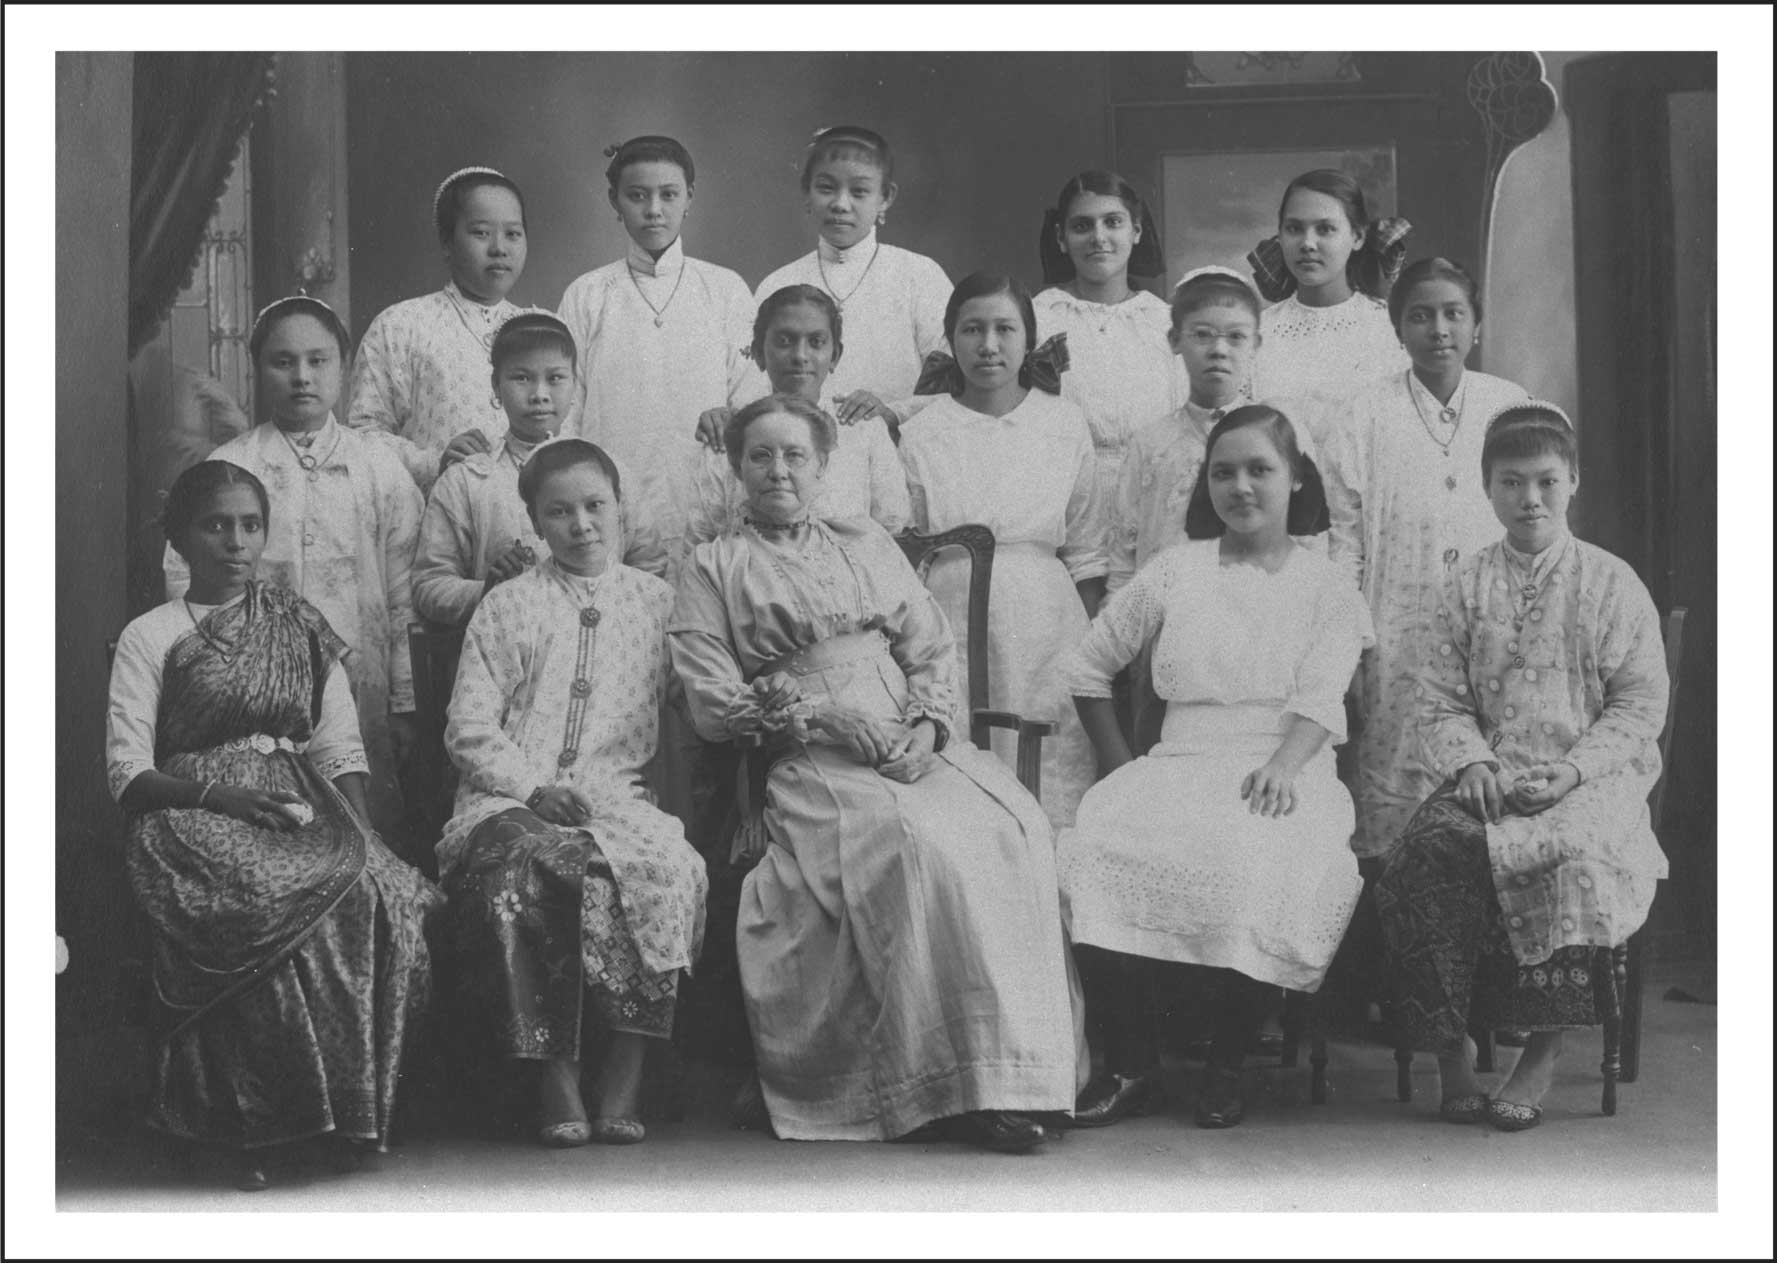 Sophia Blackmore with students of Methodist Girls' School<br>Photo Courtesy of Lee Hin Ming Collection, courtesy of National Archives of Singapore